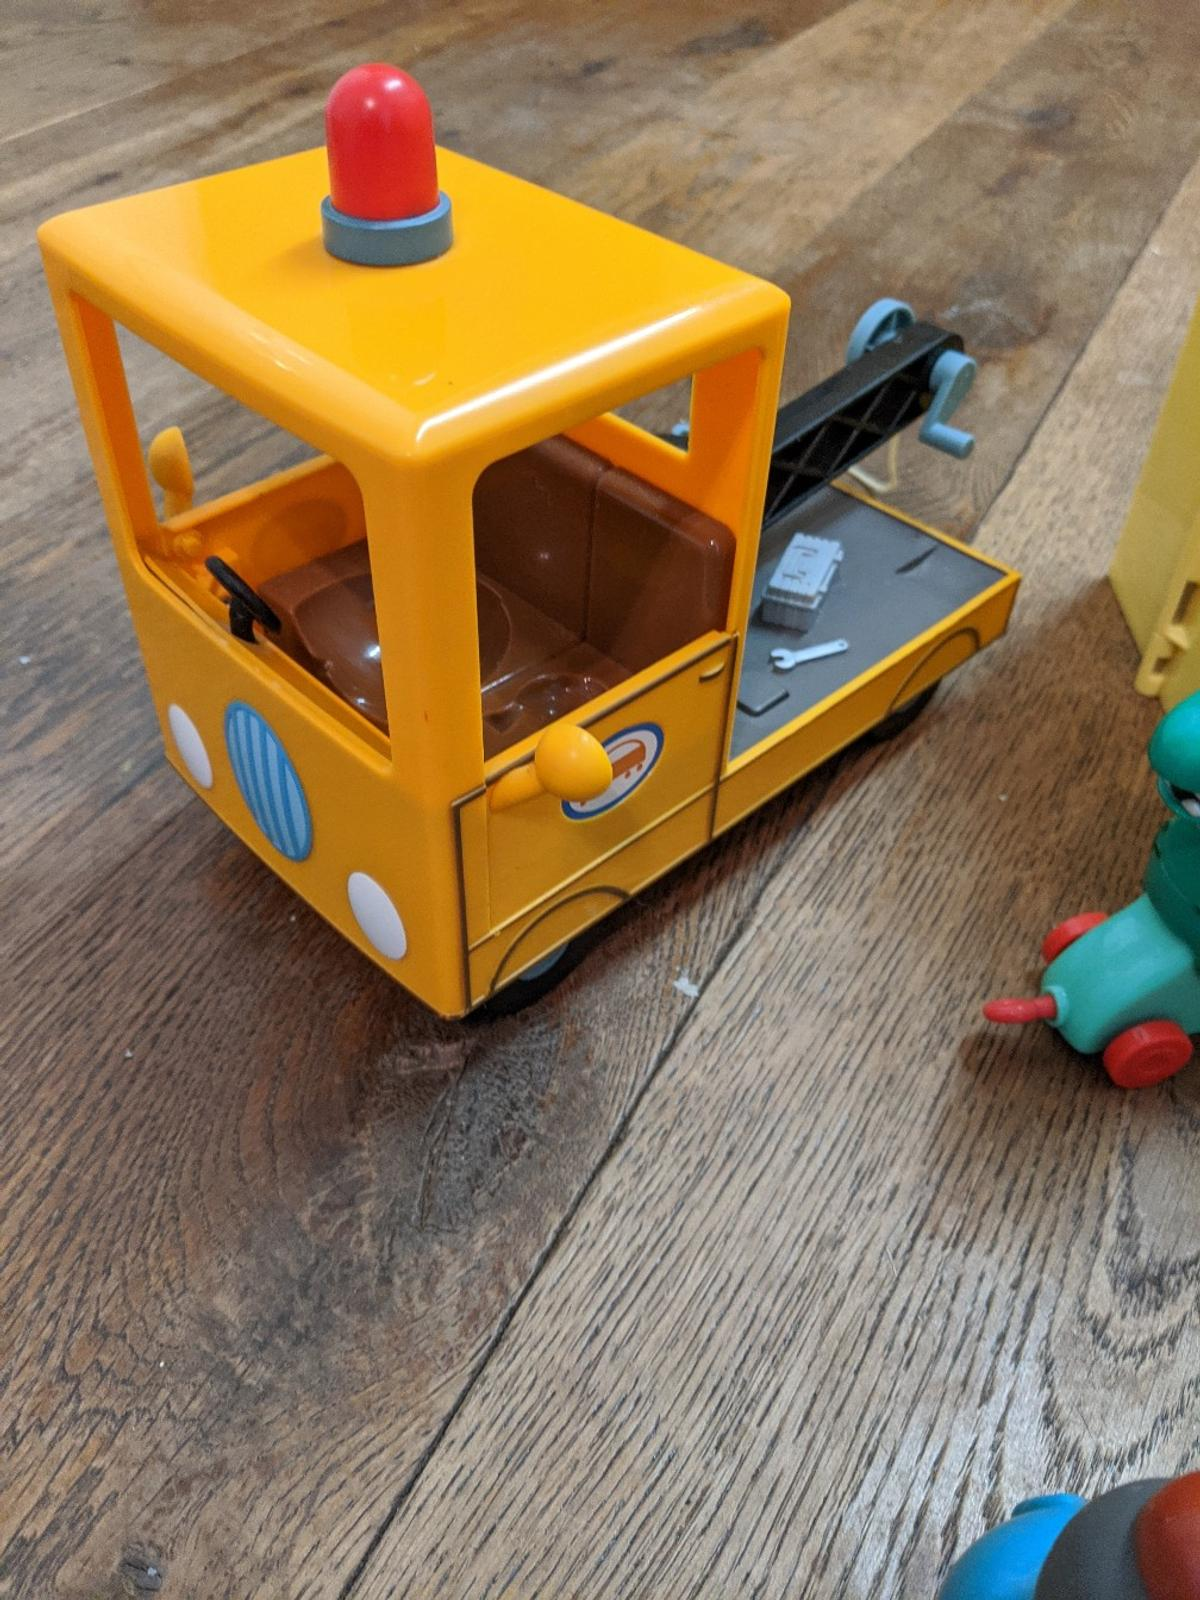 as seen in pictures, huge Peppa pig bundle including ambulance